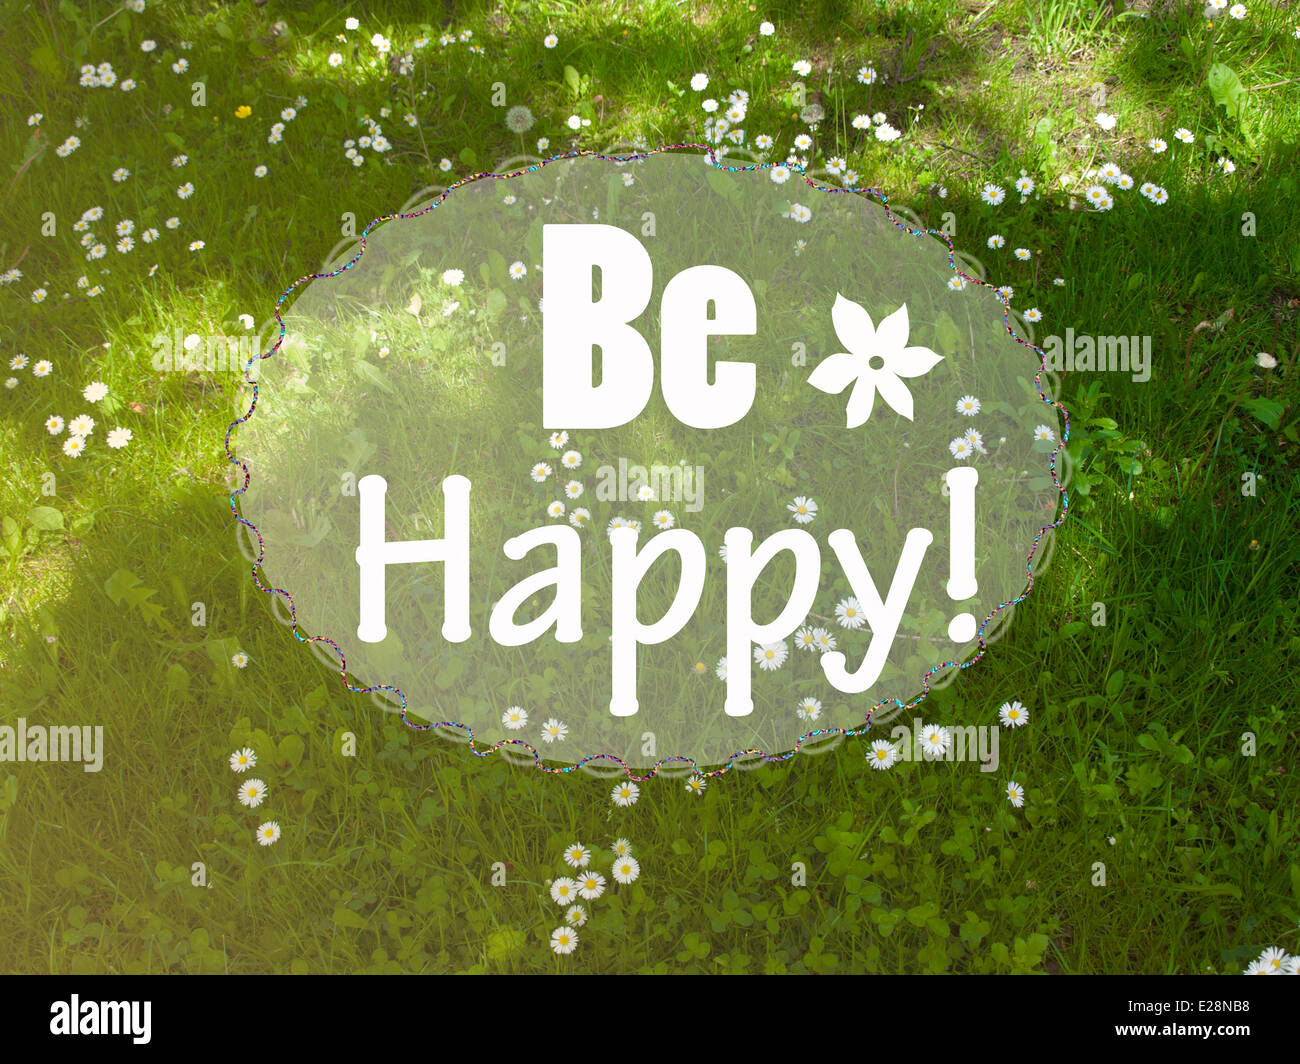 Be happy motivational message - Stock Image